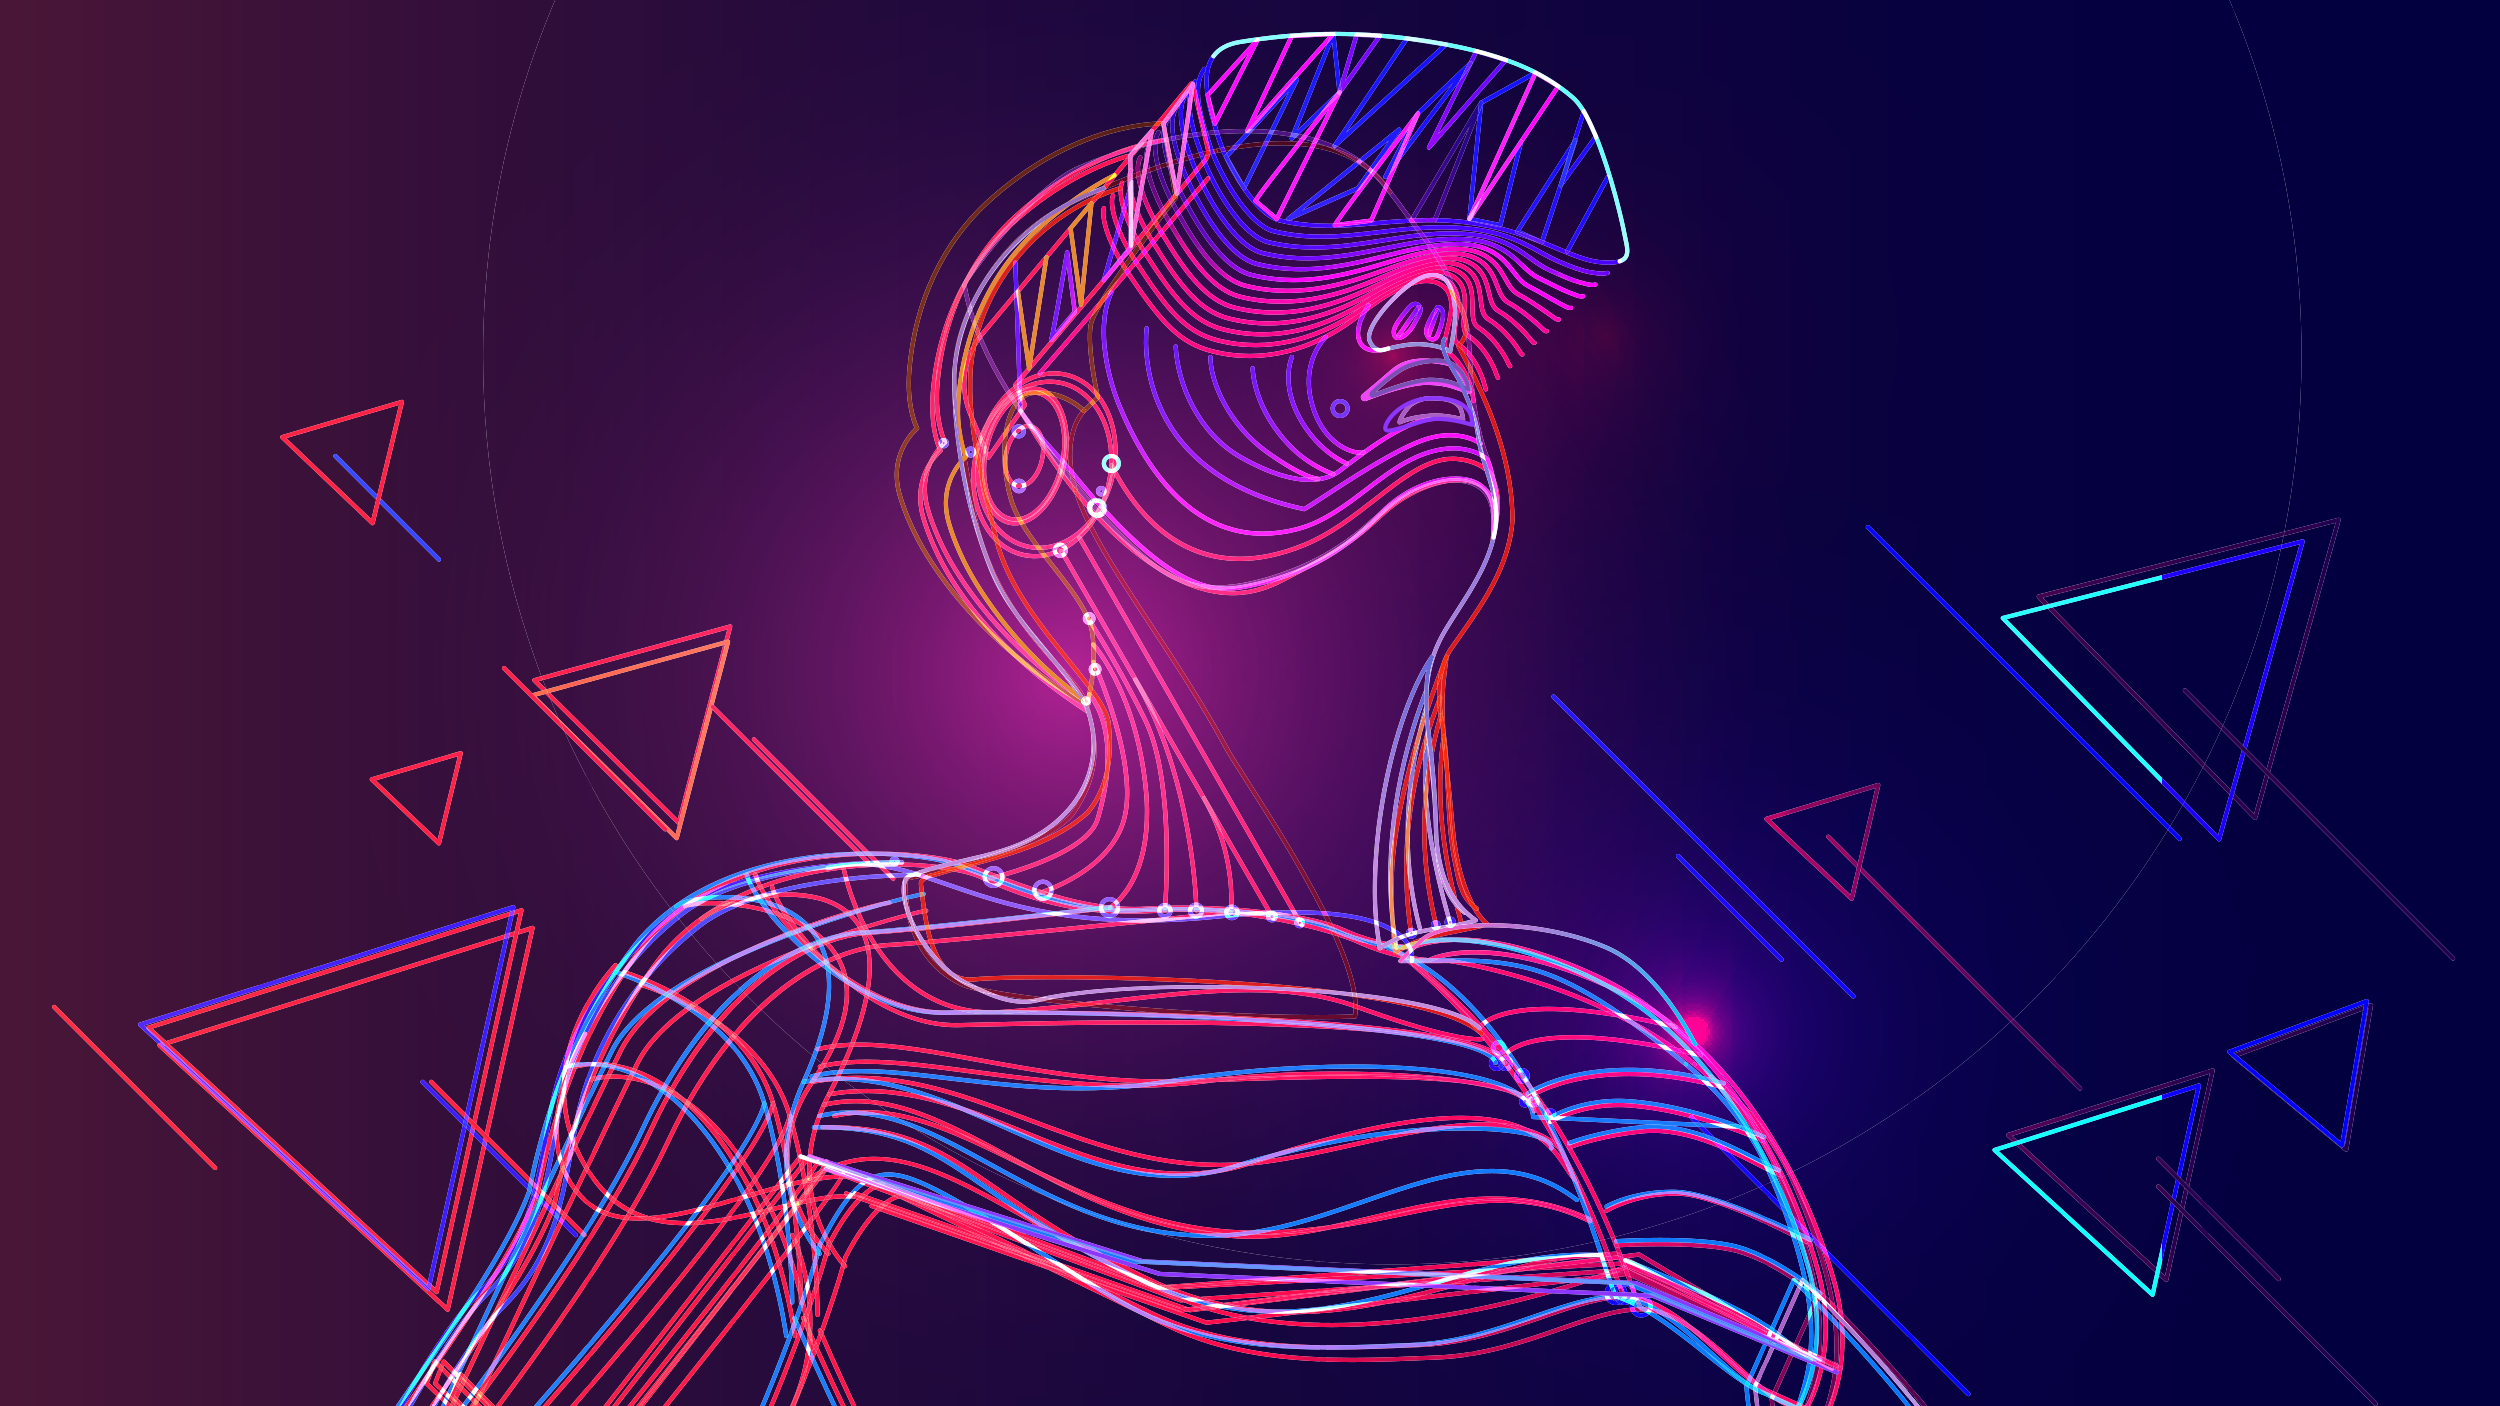 Image of a person wearing a VR headset surrounded by triangles